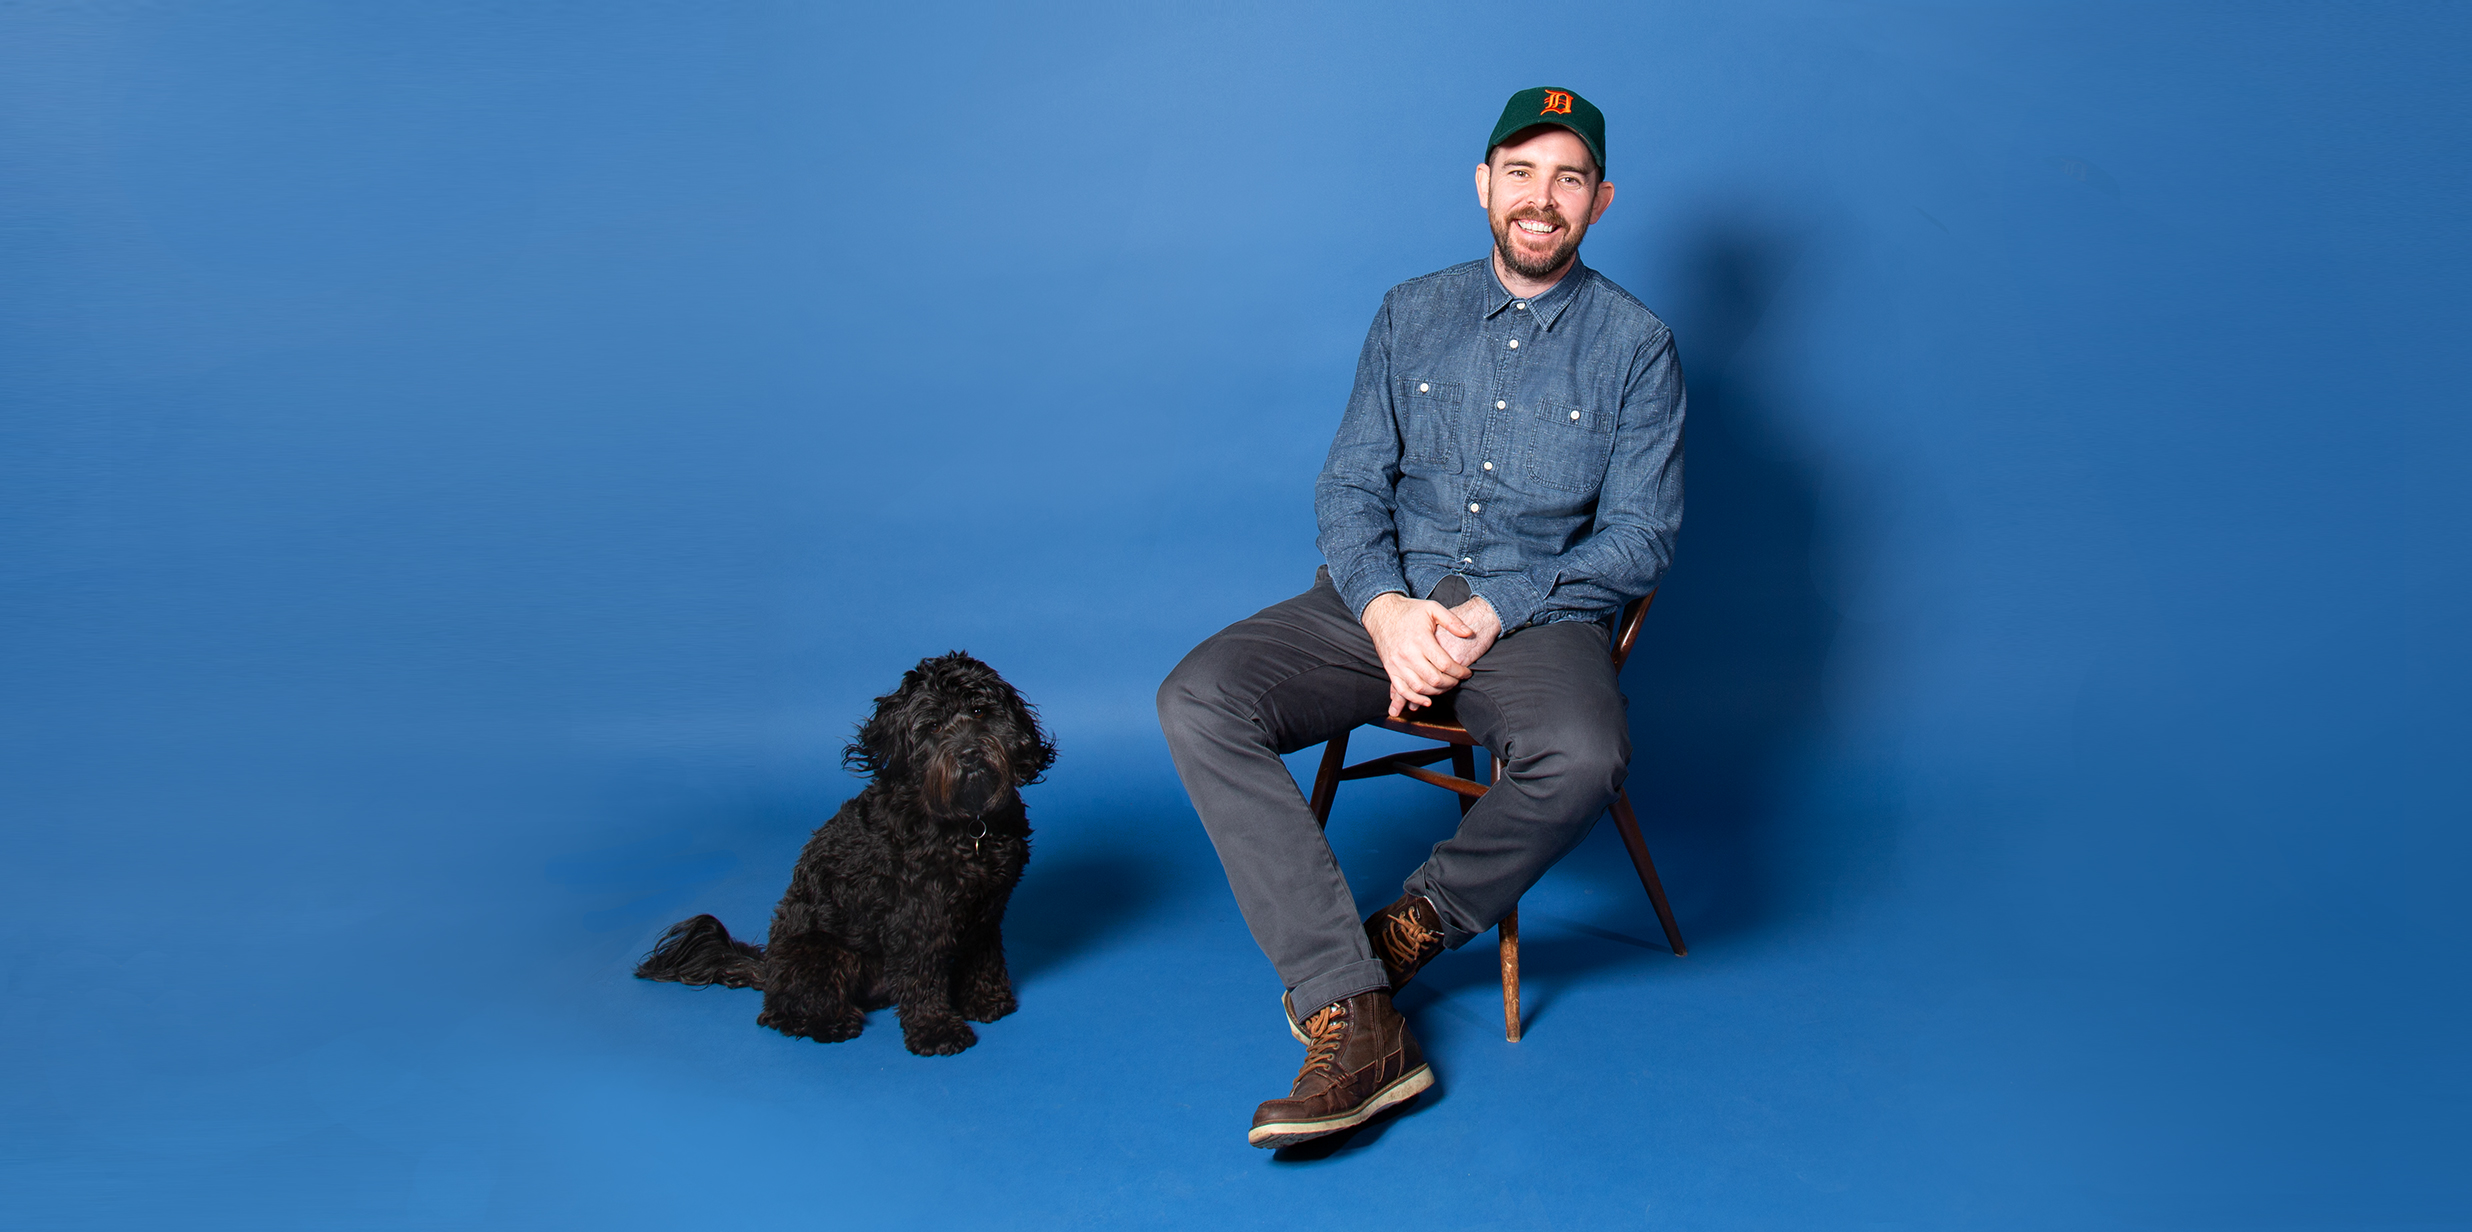 Dom, Co-founder and head of Grooming